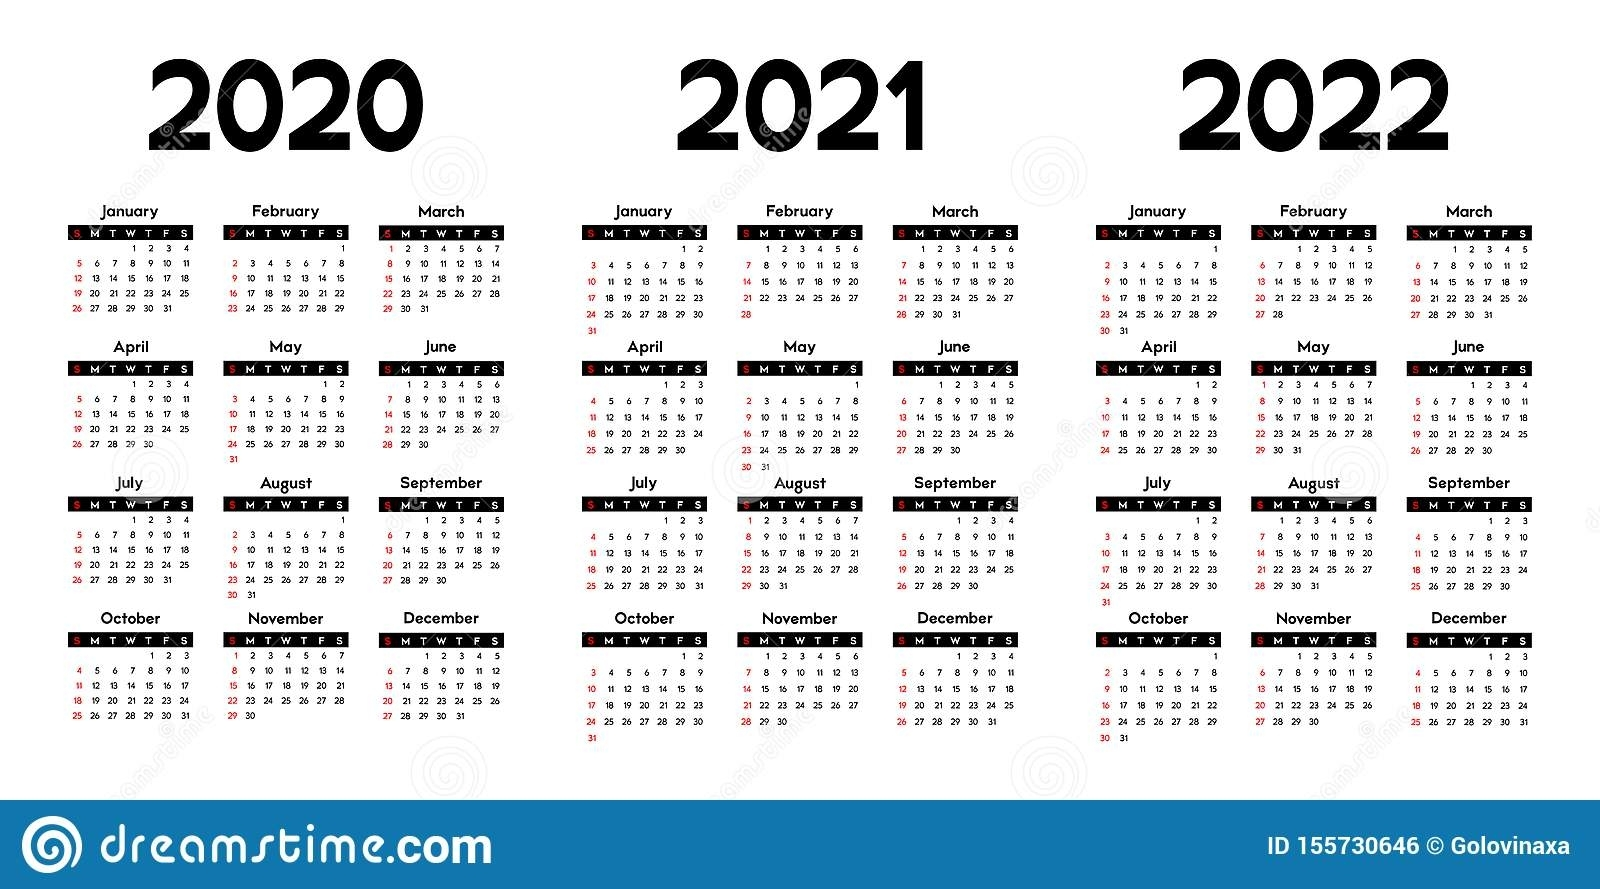 Calendar 2020, 2021 And 2022, Week Starts On Sunday Stock throughout Calendars In 2020 2021 And 2022